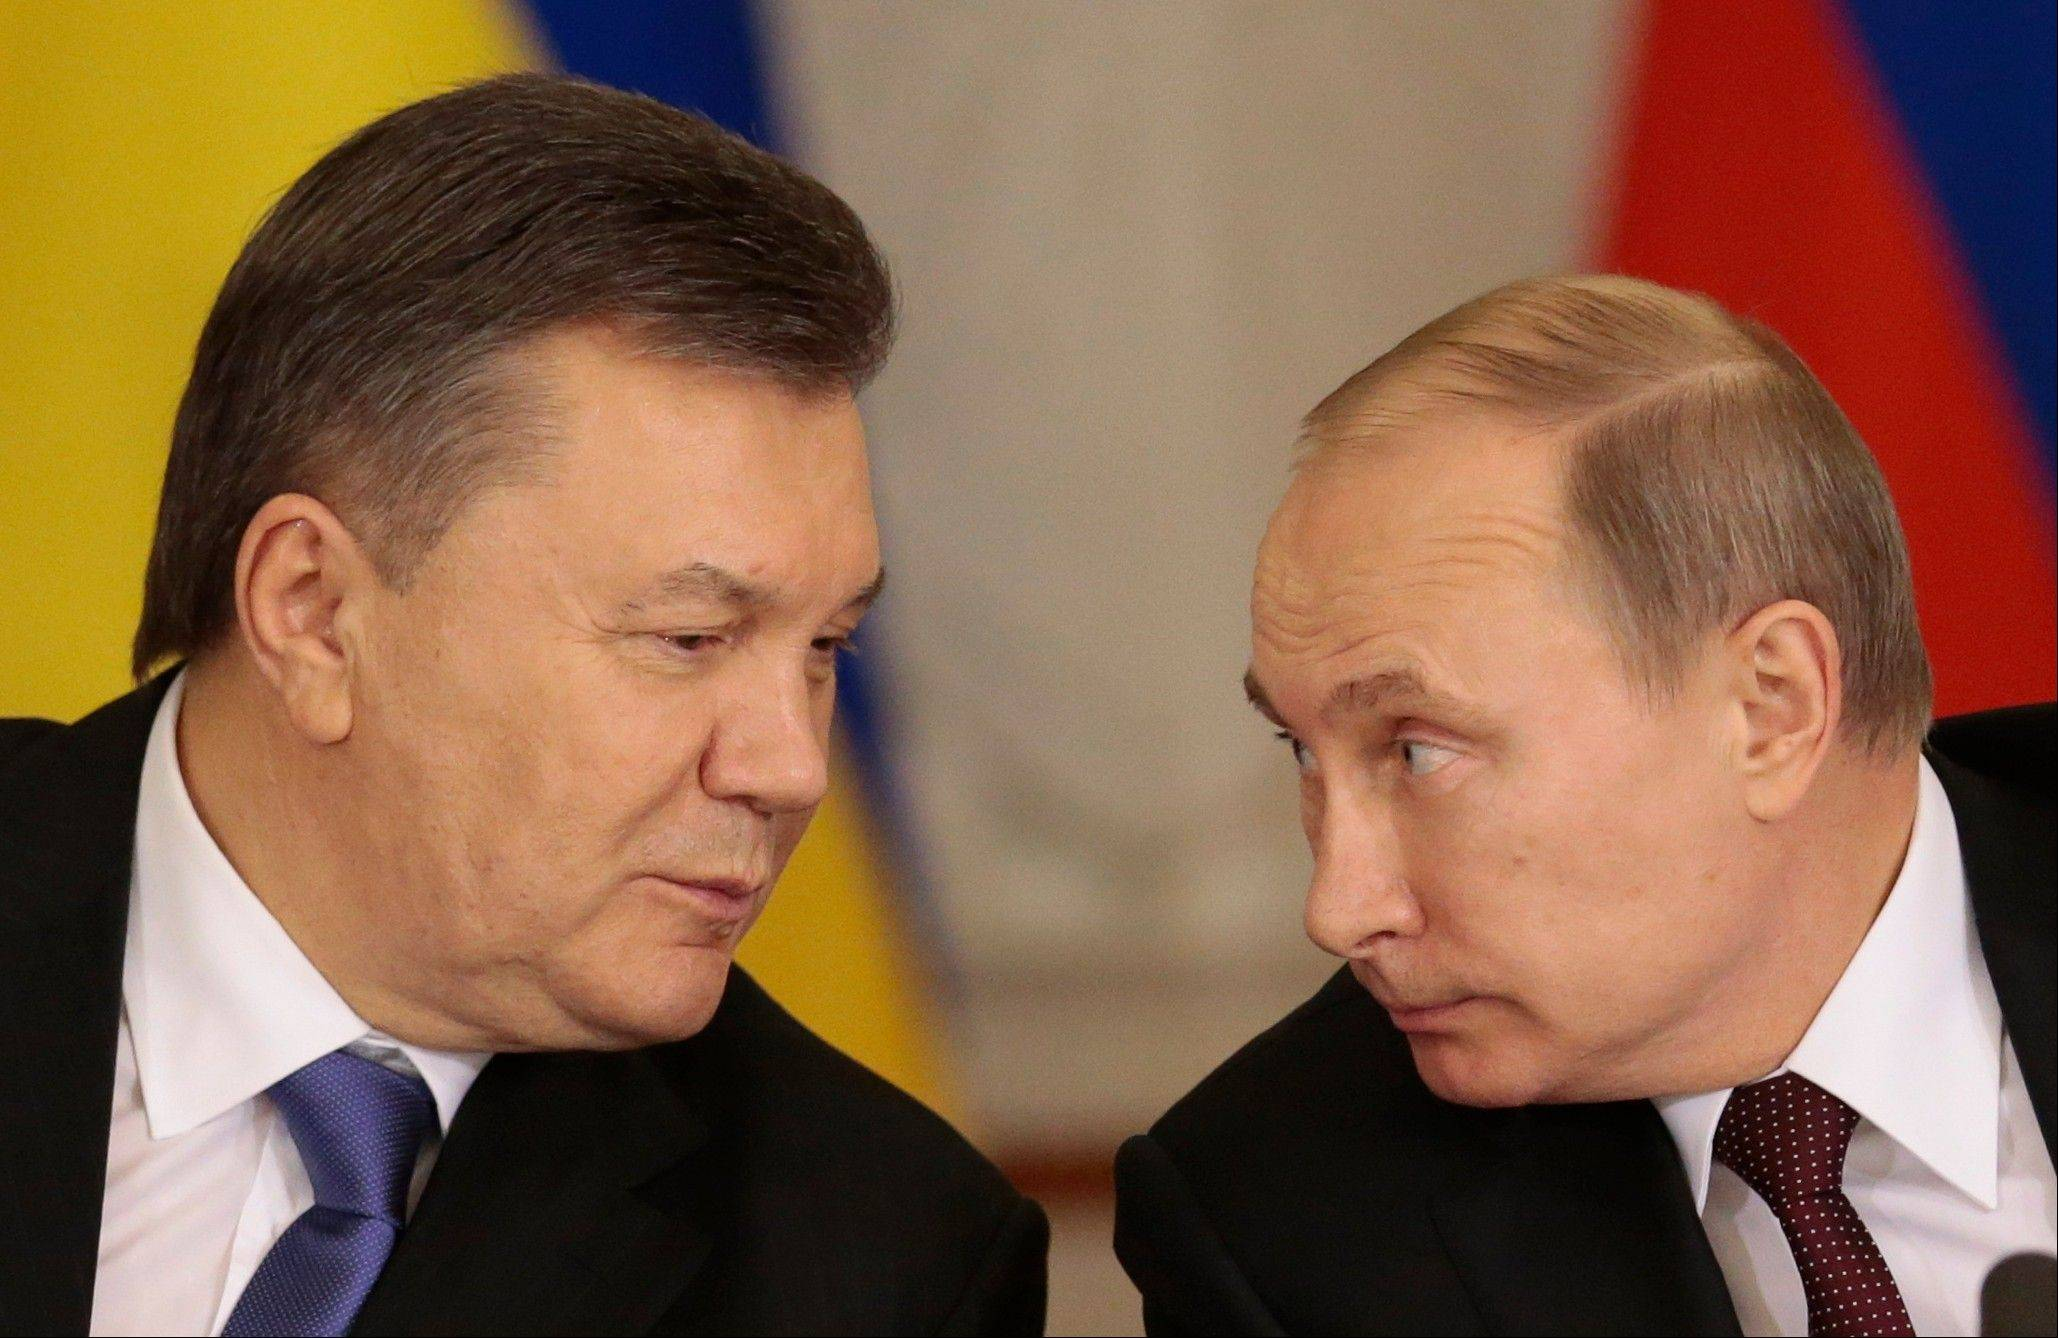 Russian President Vladimir Putin, right, and his Ukrainian counterpart Viktor Yanukovych chat during a news conference after their talks in Moscow on Tuesday.